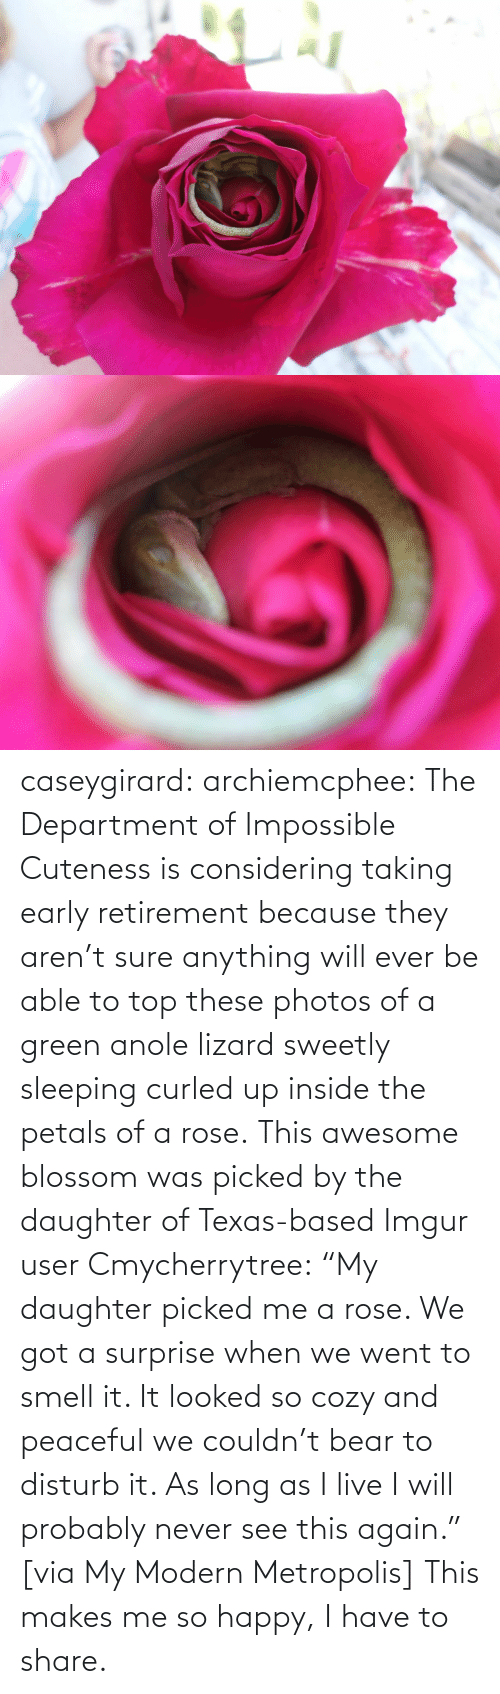 "i live: caseygirard:  archiemcphee:   The Department of Impossible Cuteness is considering taking early retirement because they aren't sure anything will ever be able to top these photos of a green anole lizard sweetly sleeping curled up inside the petals of a rose. This awesome blossom was picked by the daughter of Texas-based Imgur user Cmycherrytree: ""My daughter picked me a rose. We got a surprise when we went to smell it. It looked so cozy and peaceful we couldn't bear to disturb it. As long as I live I will probably never see this again."" [via My Modern Metropolis]   This makes me so happy, I have to share."